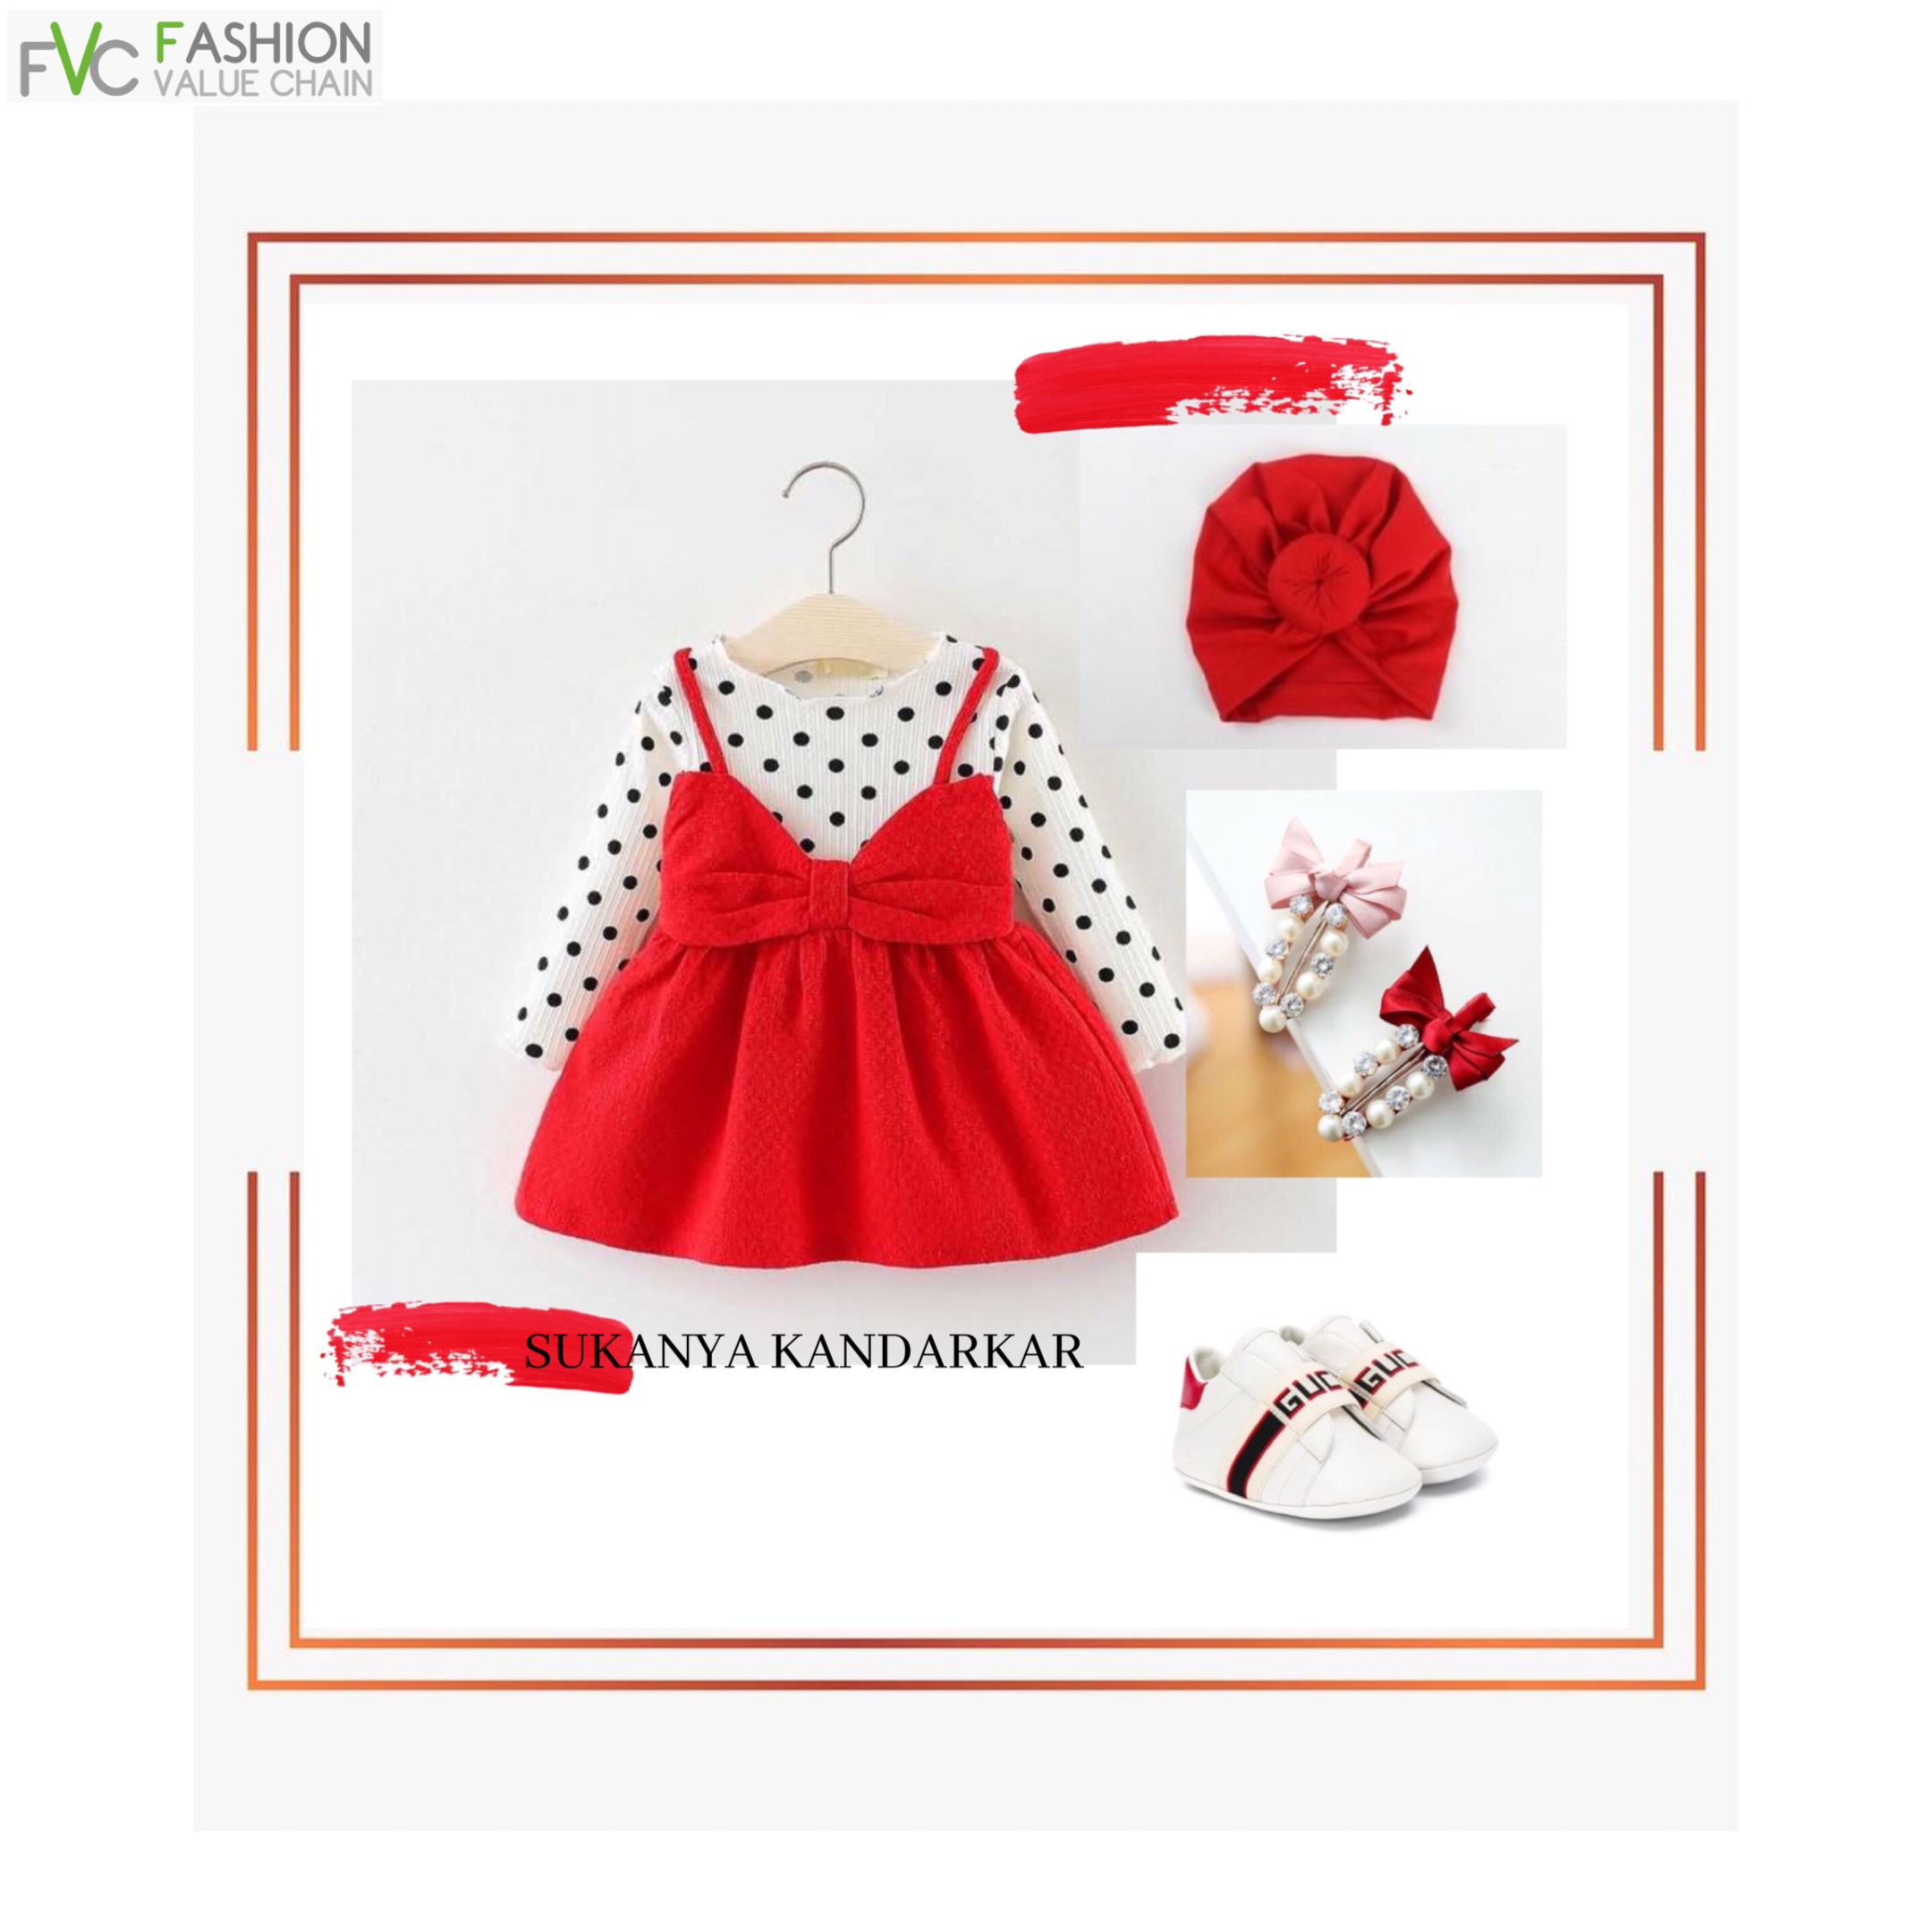 Ready Red Scarlet